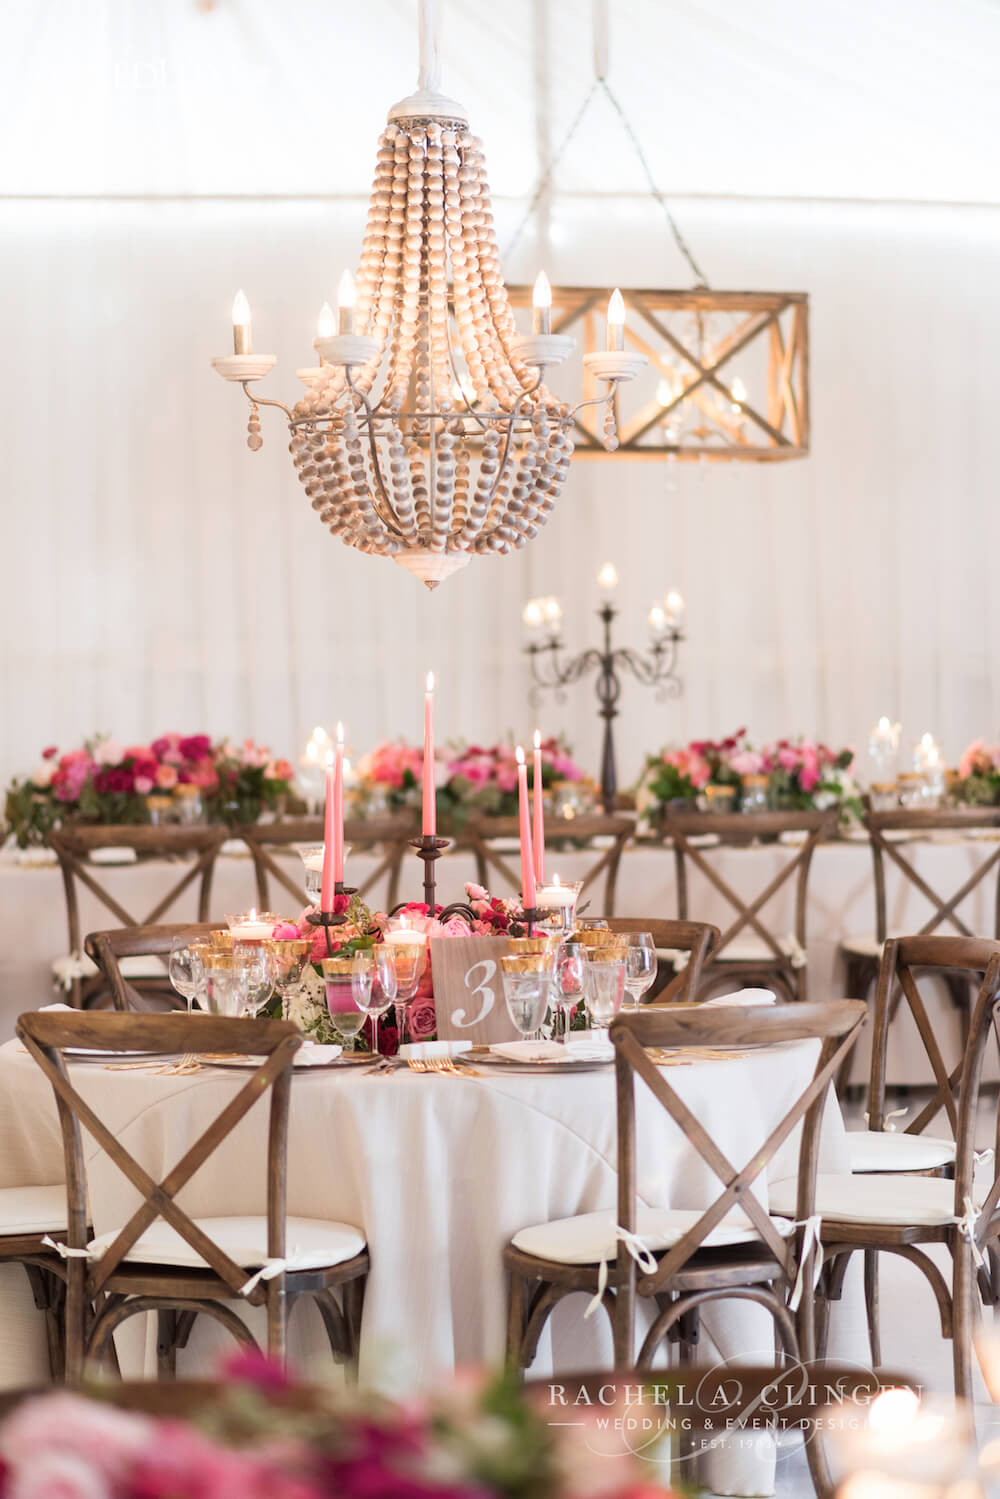 Blog Wedding Decor Toronto Rachel A Clingen Wedding